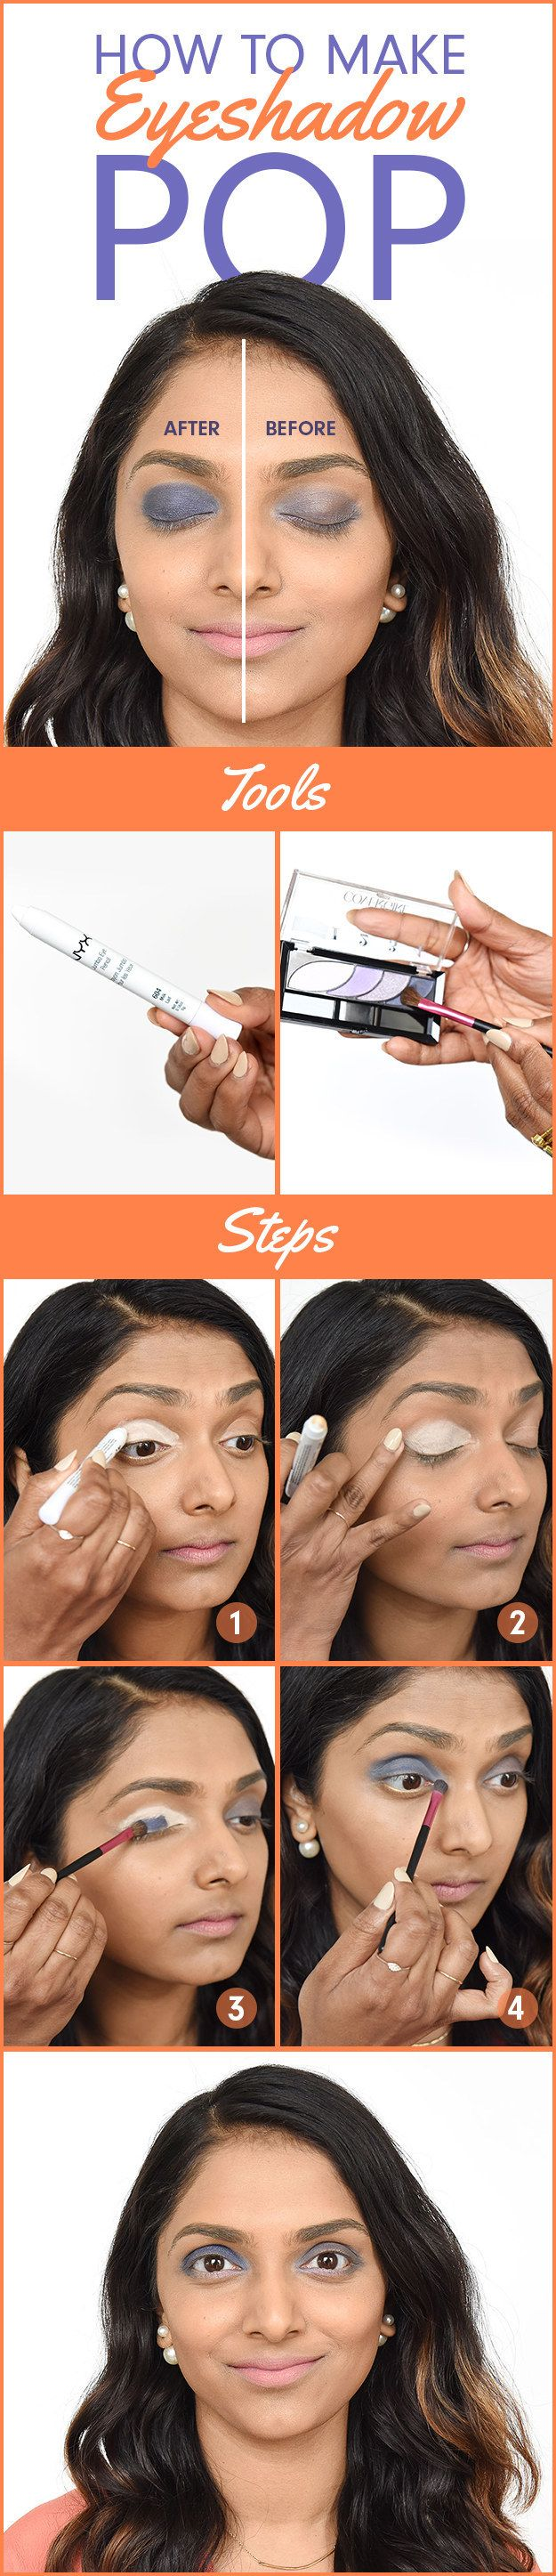 Make your eyeshadow POP by using a white, chubby eye pencil as a primer on your eyelids.